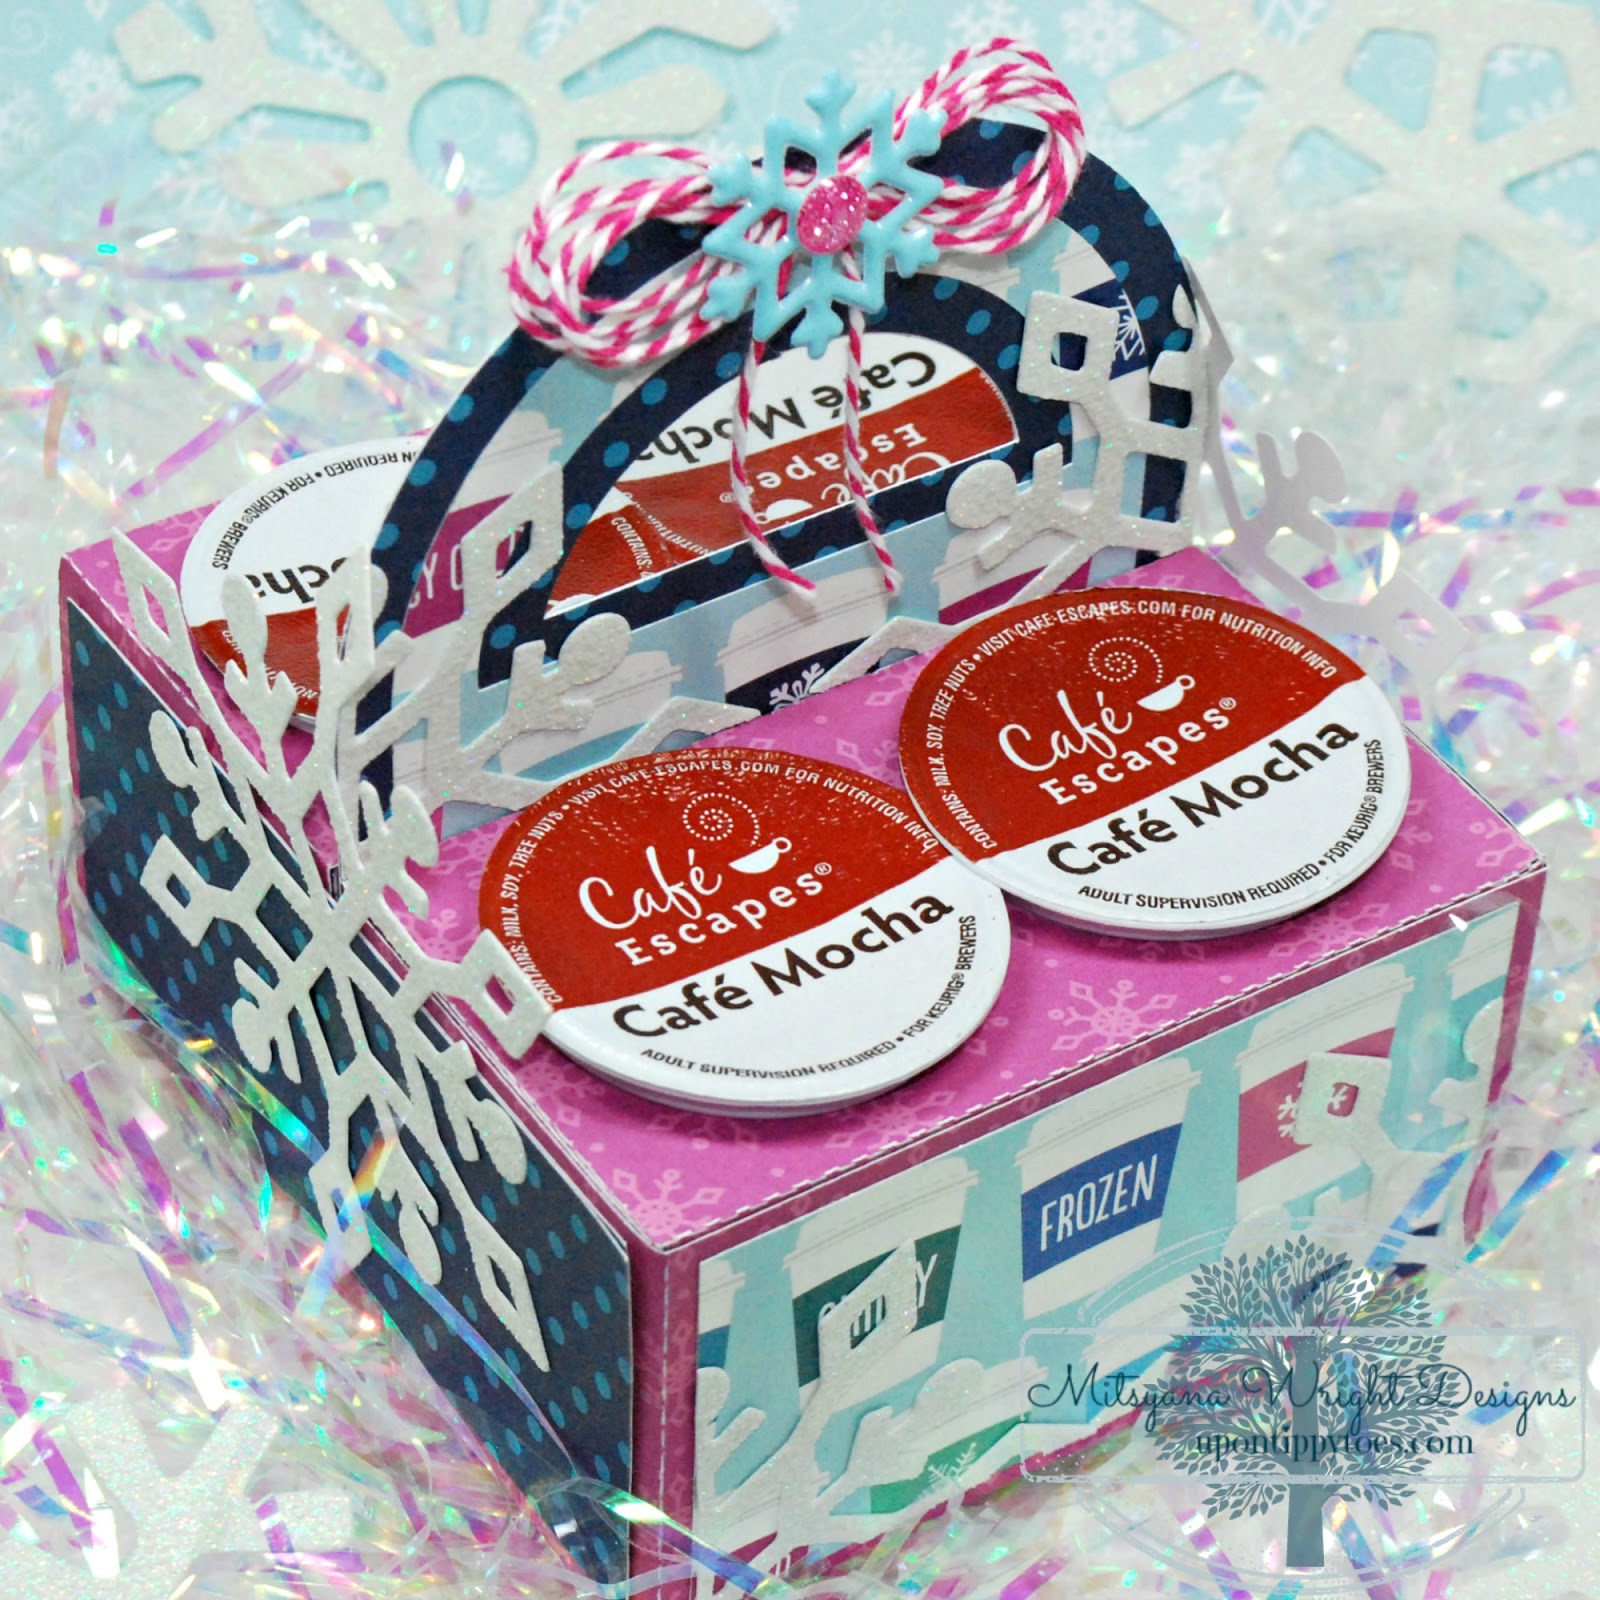 Up On Tippy Toes: Kcup Caddy Gift Box - w/ Free SVG Template Download